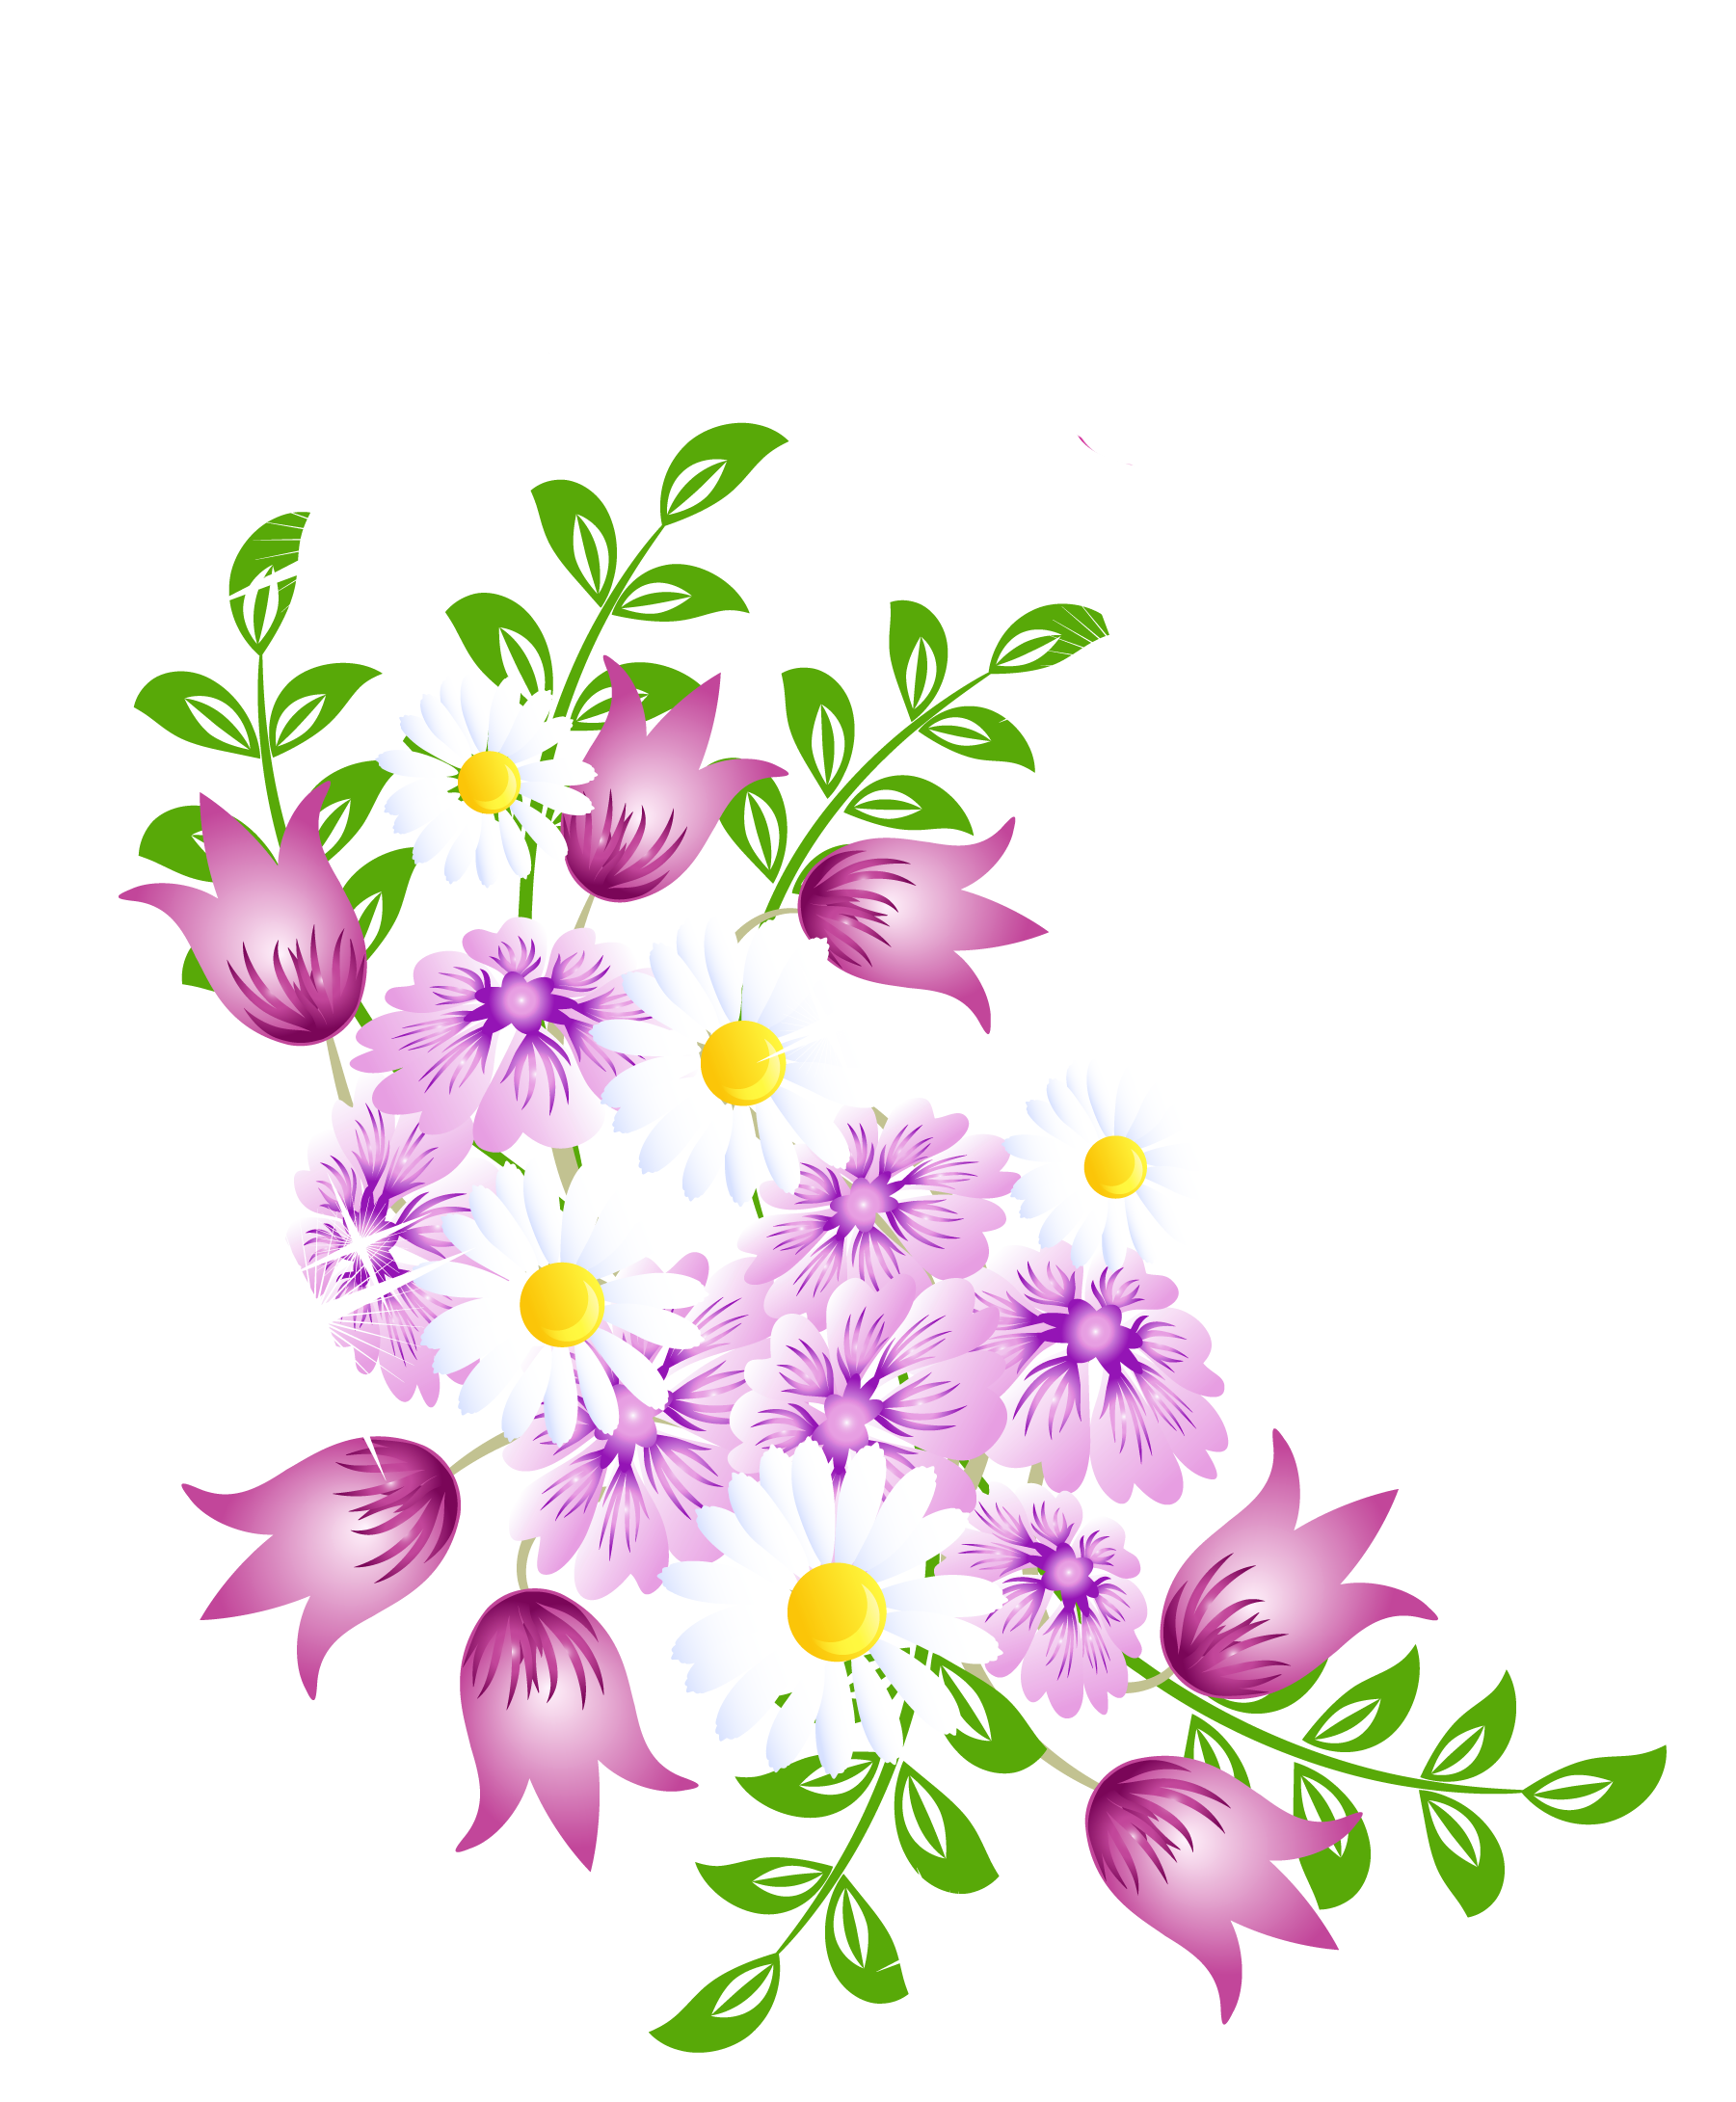 Free photos of spring flowers svg black and white FLÔRES & JARDIM E ETC. | FLÔRES | Pinterest | Art, Clip art and Spring svg black and white